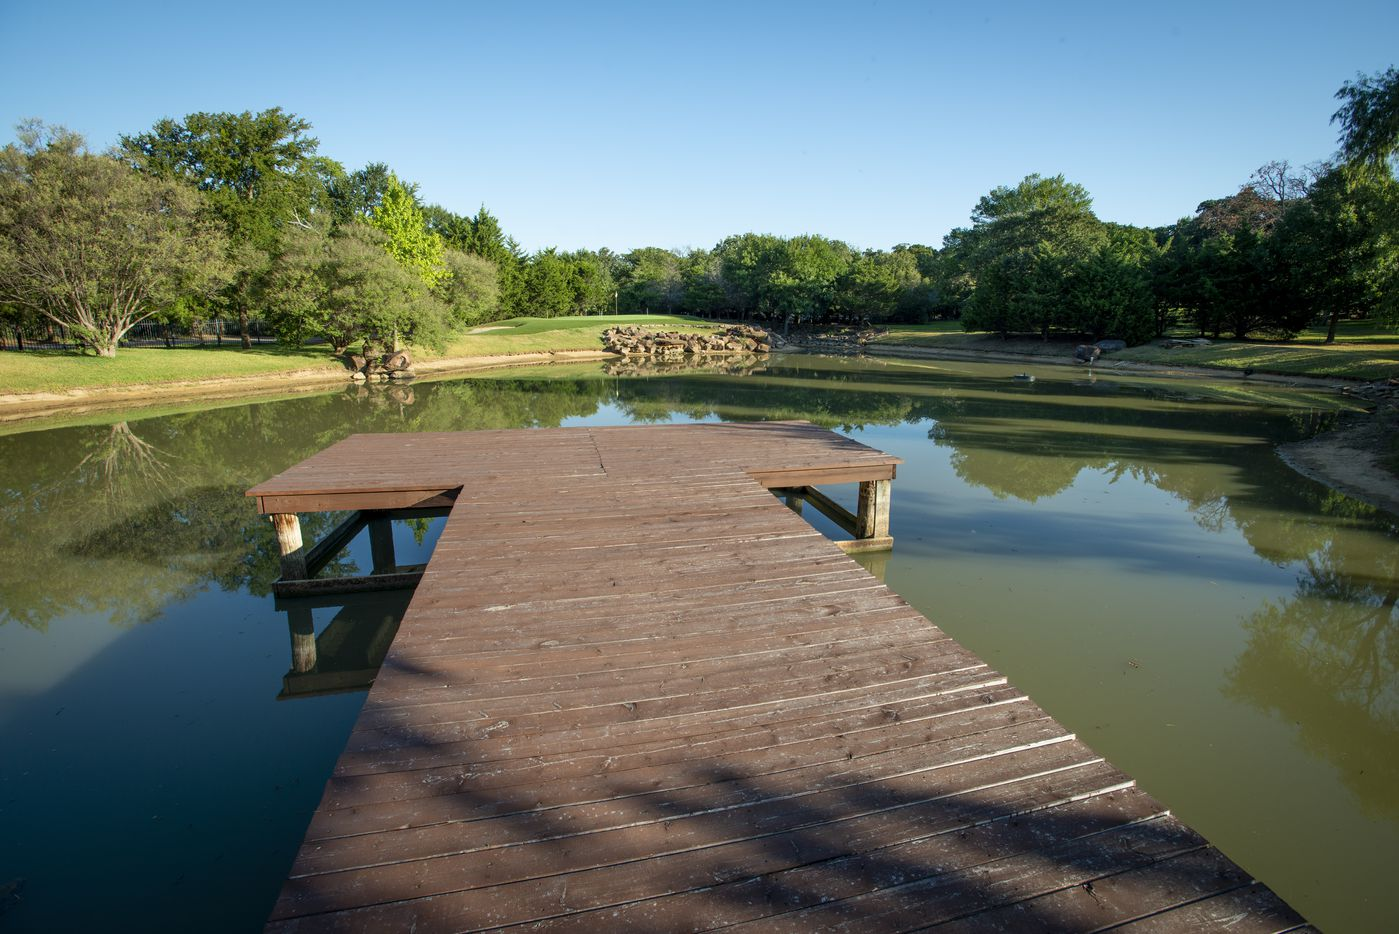 Stocked bass pond at 5101 Kensington Ct., in Flower Mound, Texas on August 19, 2020. (Robert W. Hart/Special Contributor)